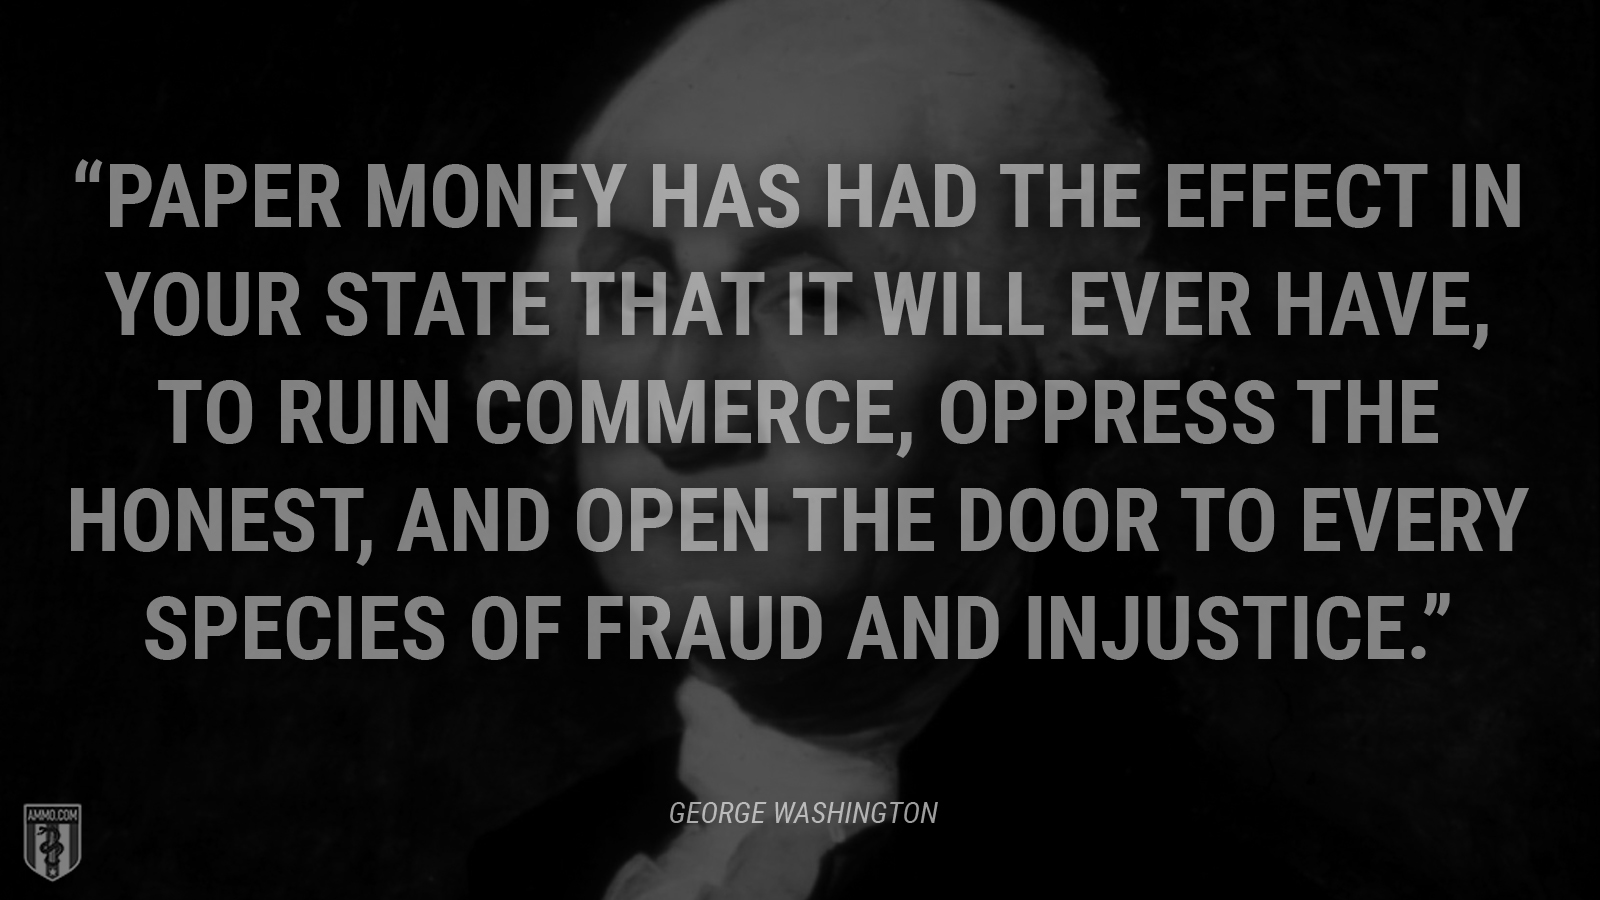 """Paper money has had the effect in your state that it will ever have, to ruin commerce, oppress the honest, and open the door to every species of fraud and injustice."" - George Washington"